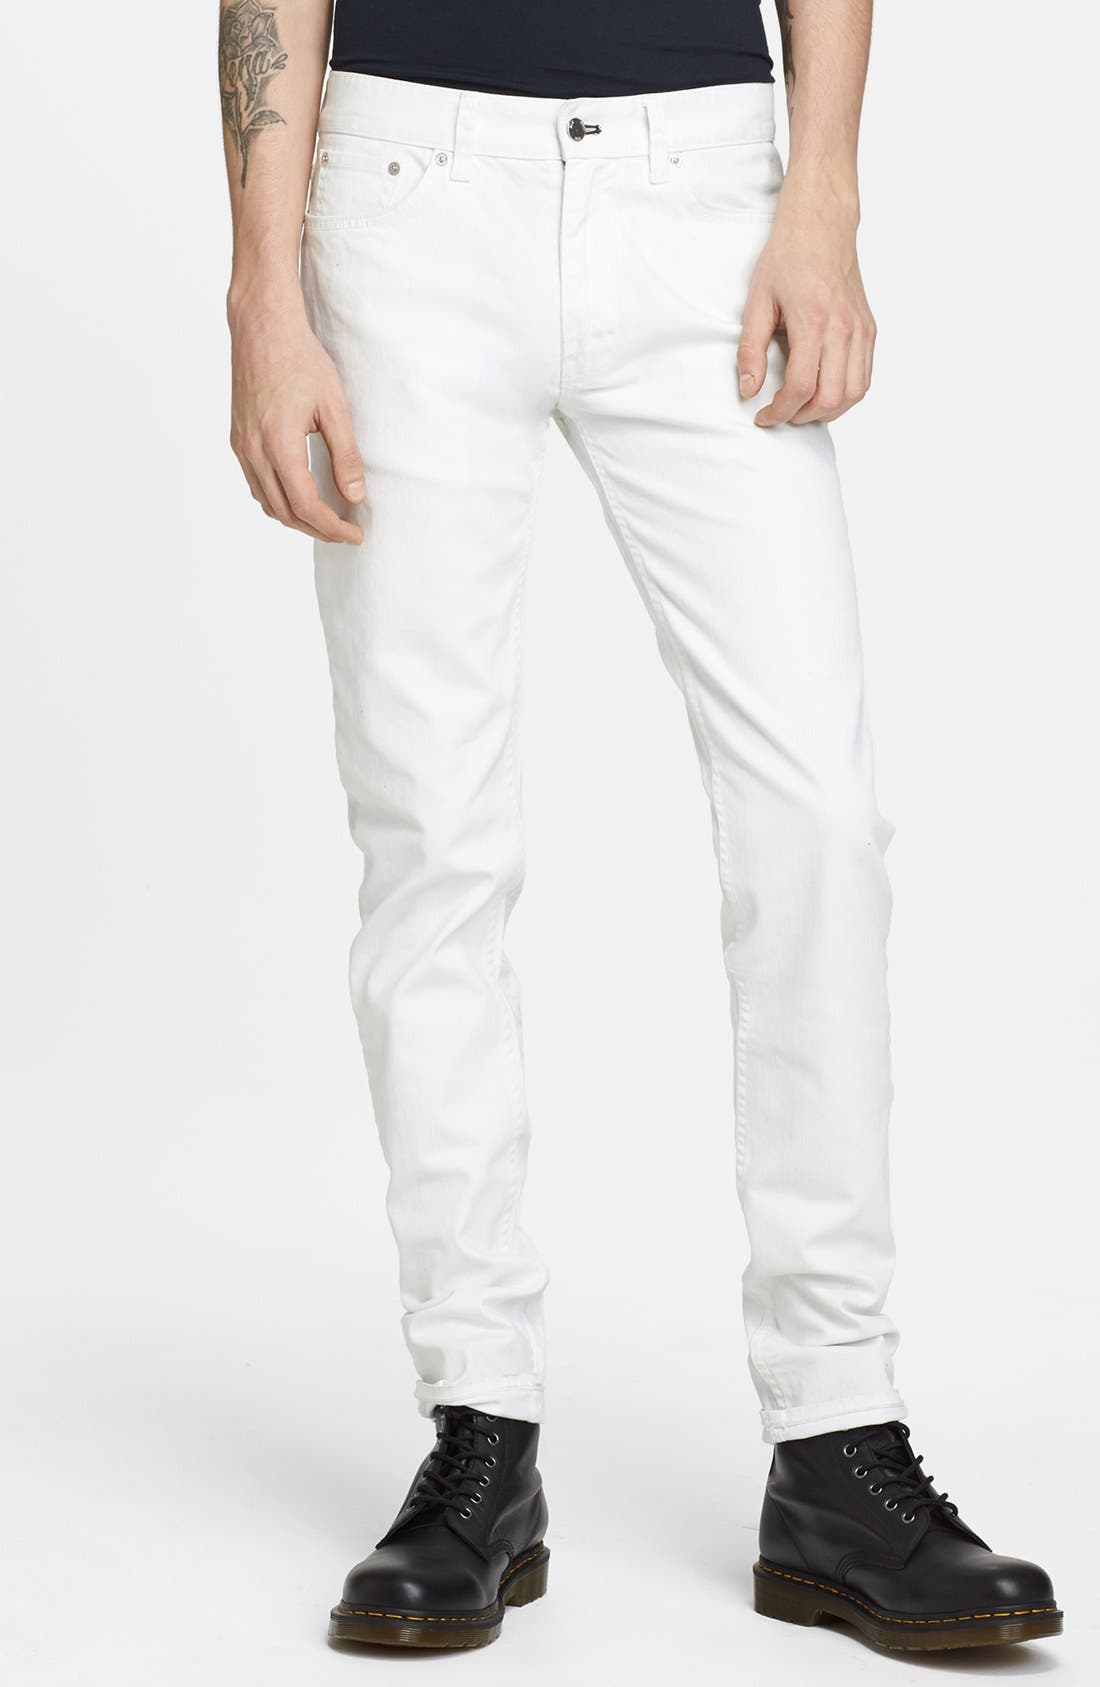 Alternate Image 1 Selected - BLK DNM 'Jeans 5' Slim Straight Leg Coated Denim Jeans (Natural White)